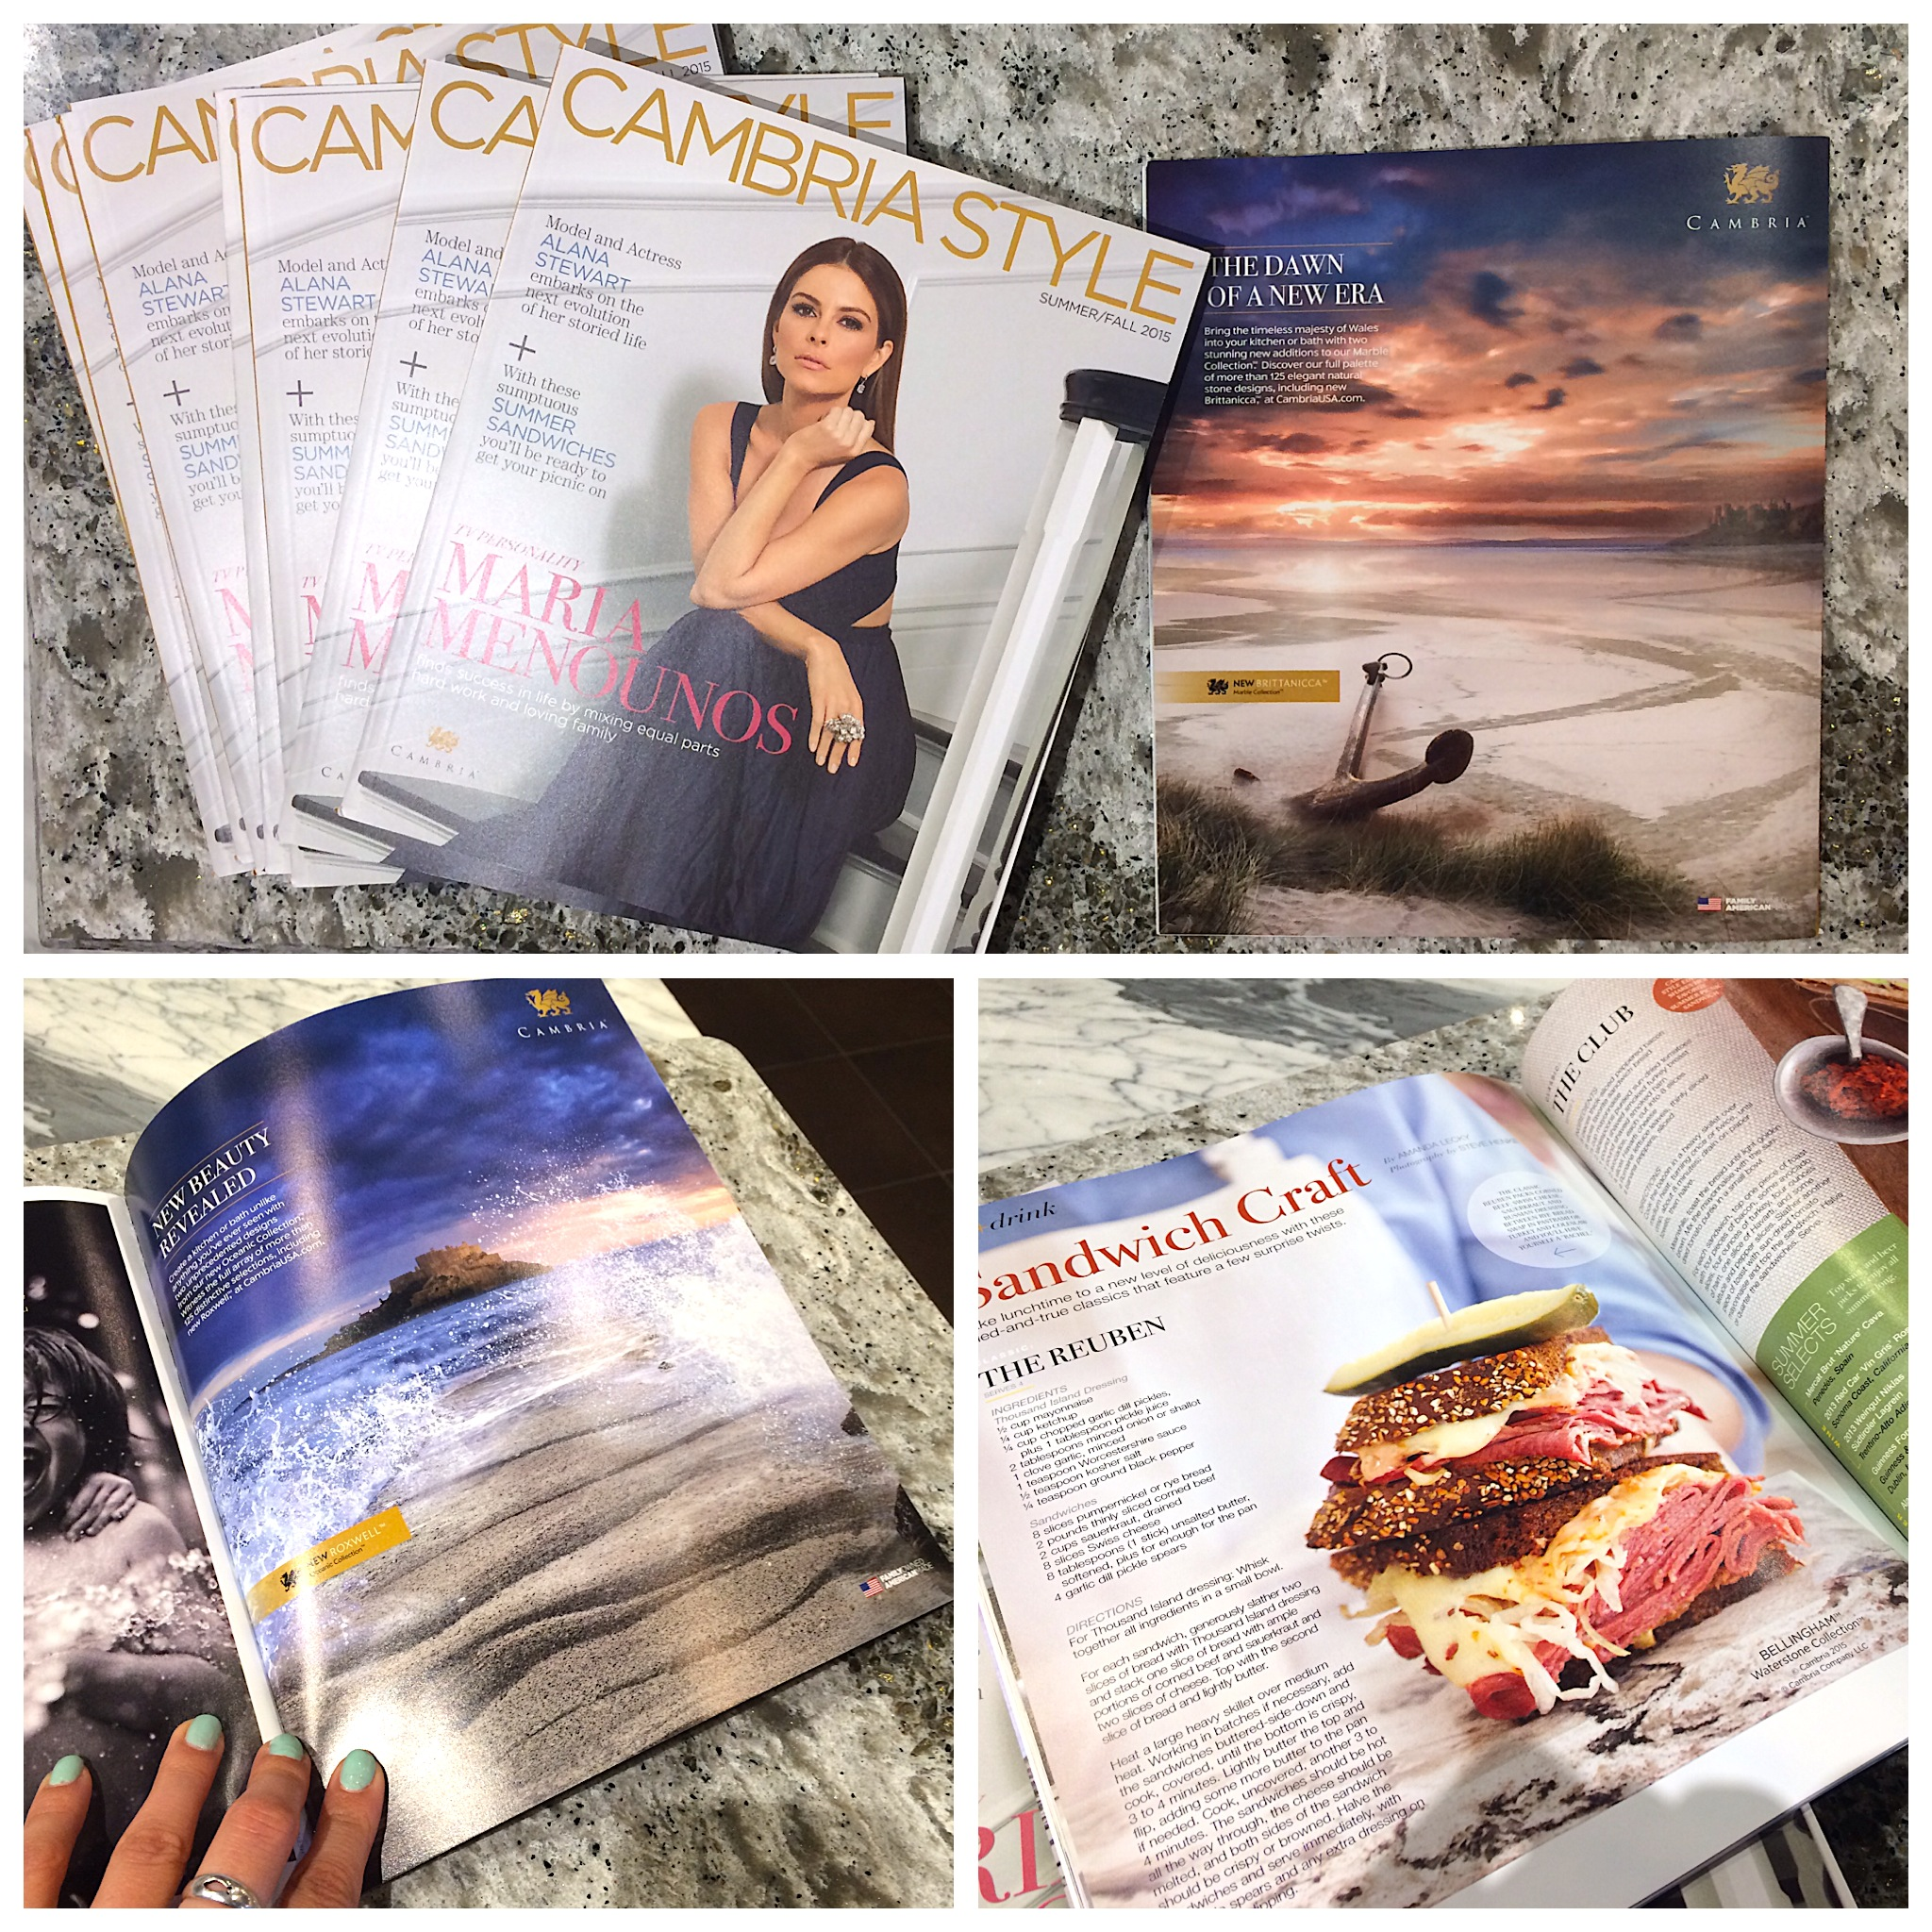 Cambria Style magazine 2015, Cambria Quartz Denver, yk stone center